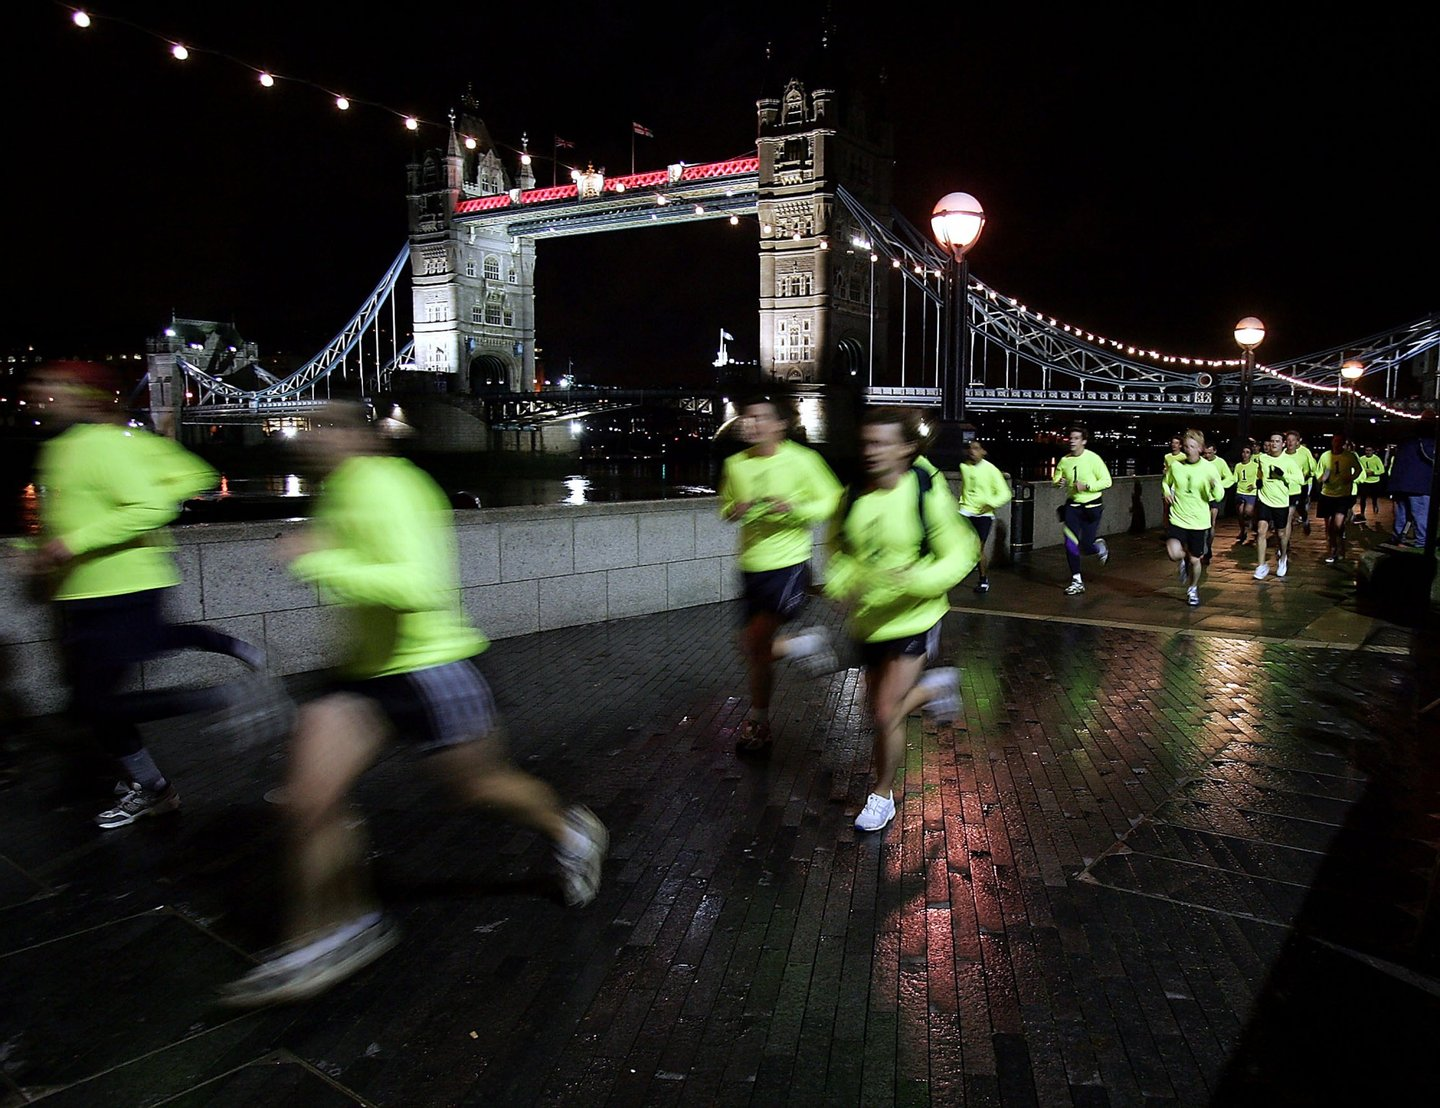 LONDON - NOVEMBER 28: Runners head past Tower Bridge during the Nike Run London 10k race on November 28, 2004 in London, England. (Photo by John Gichigi/Getty Images)